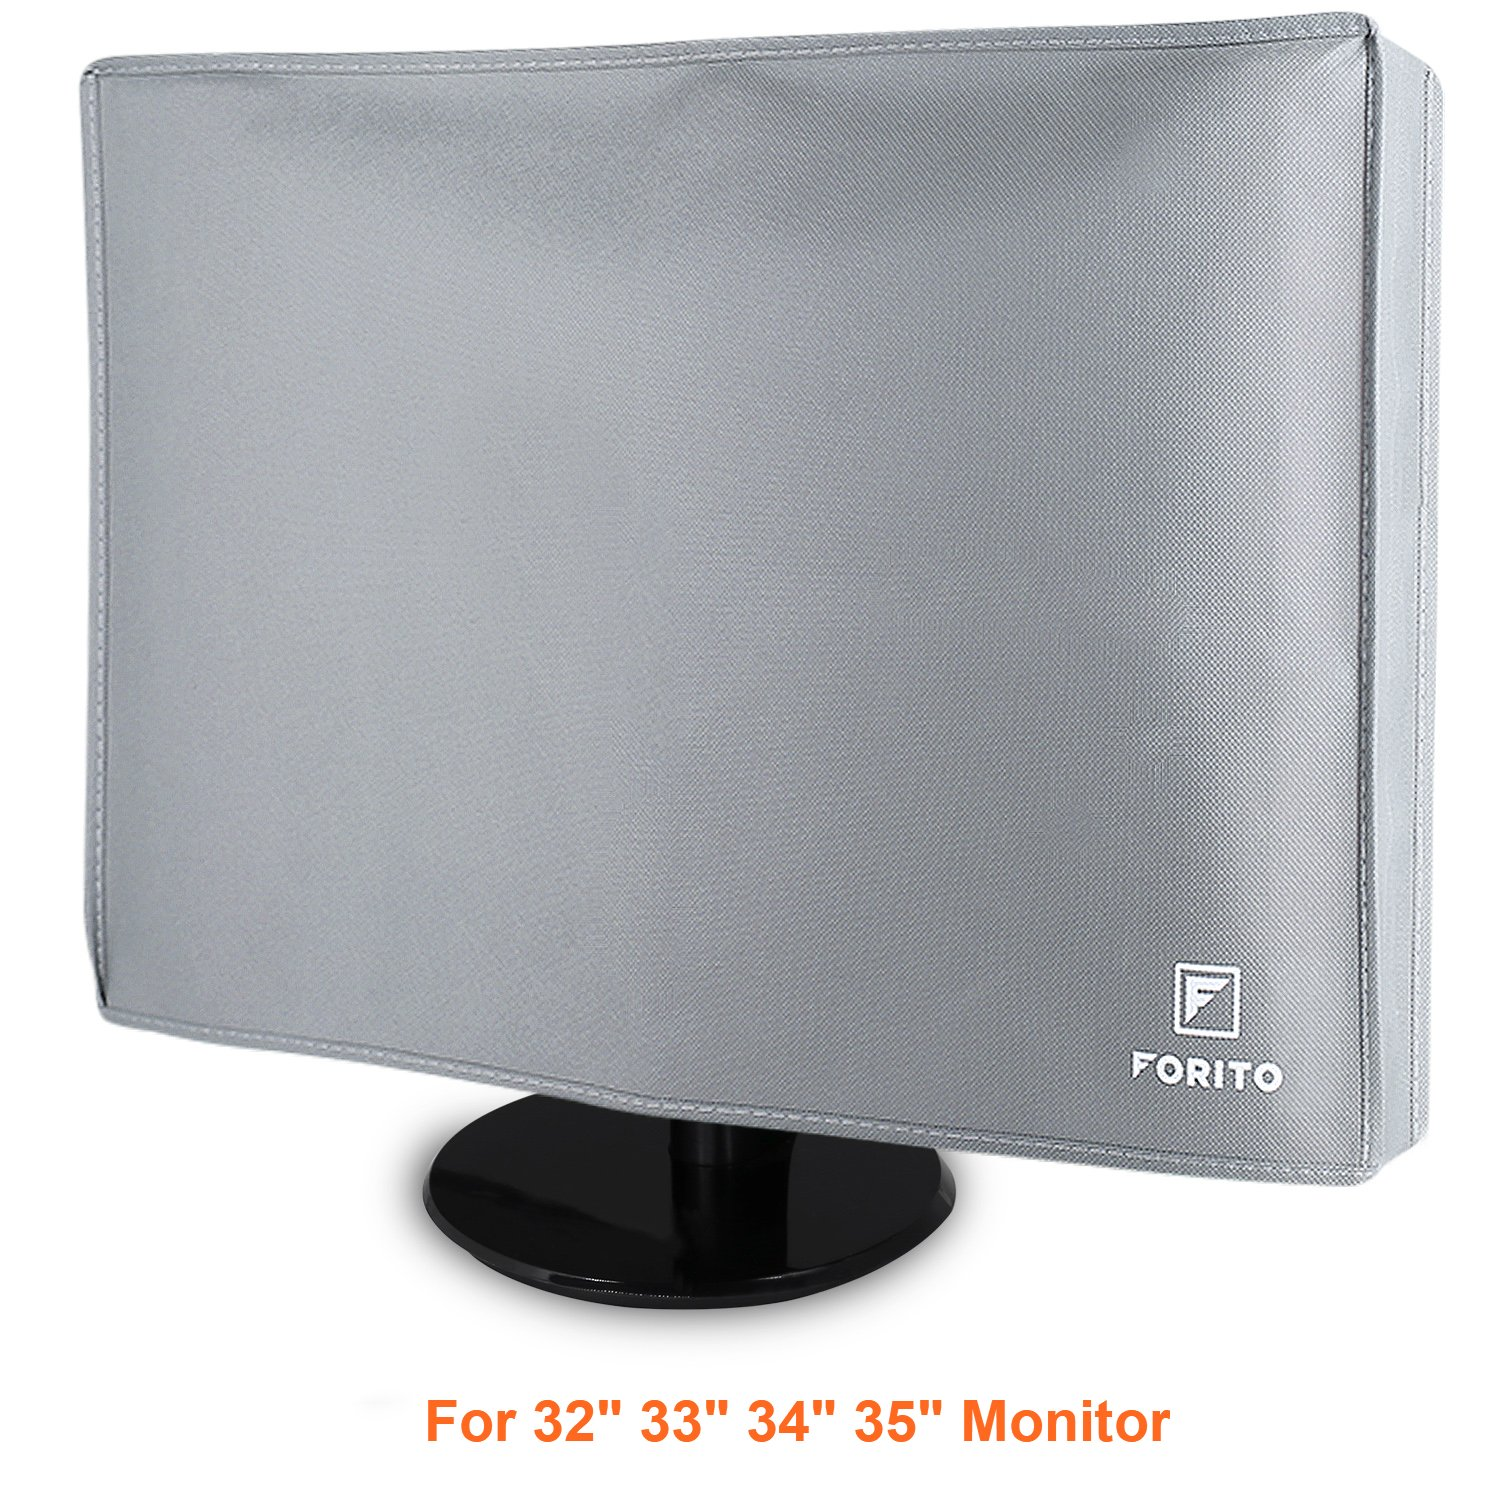 "19"" 19.5 20 21.5 22 Computer Monitor Dust Cover, FORITO Nonwoven Fabric Dust-Proof and Mold-Proof Monitor Dust Cover for 19 Inch to 22 Inch LCD/LED HD Screen Panel -Gray FM-MDC20-GY"